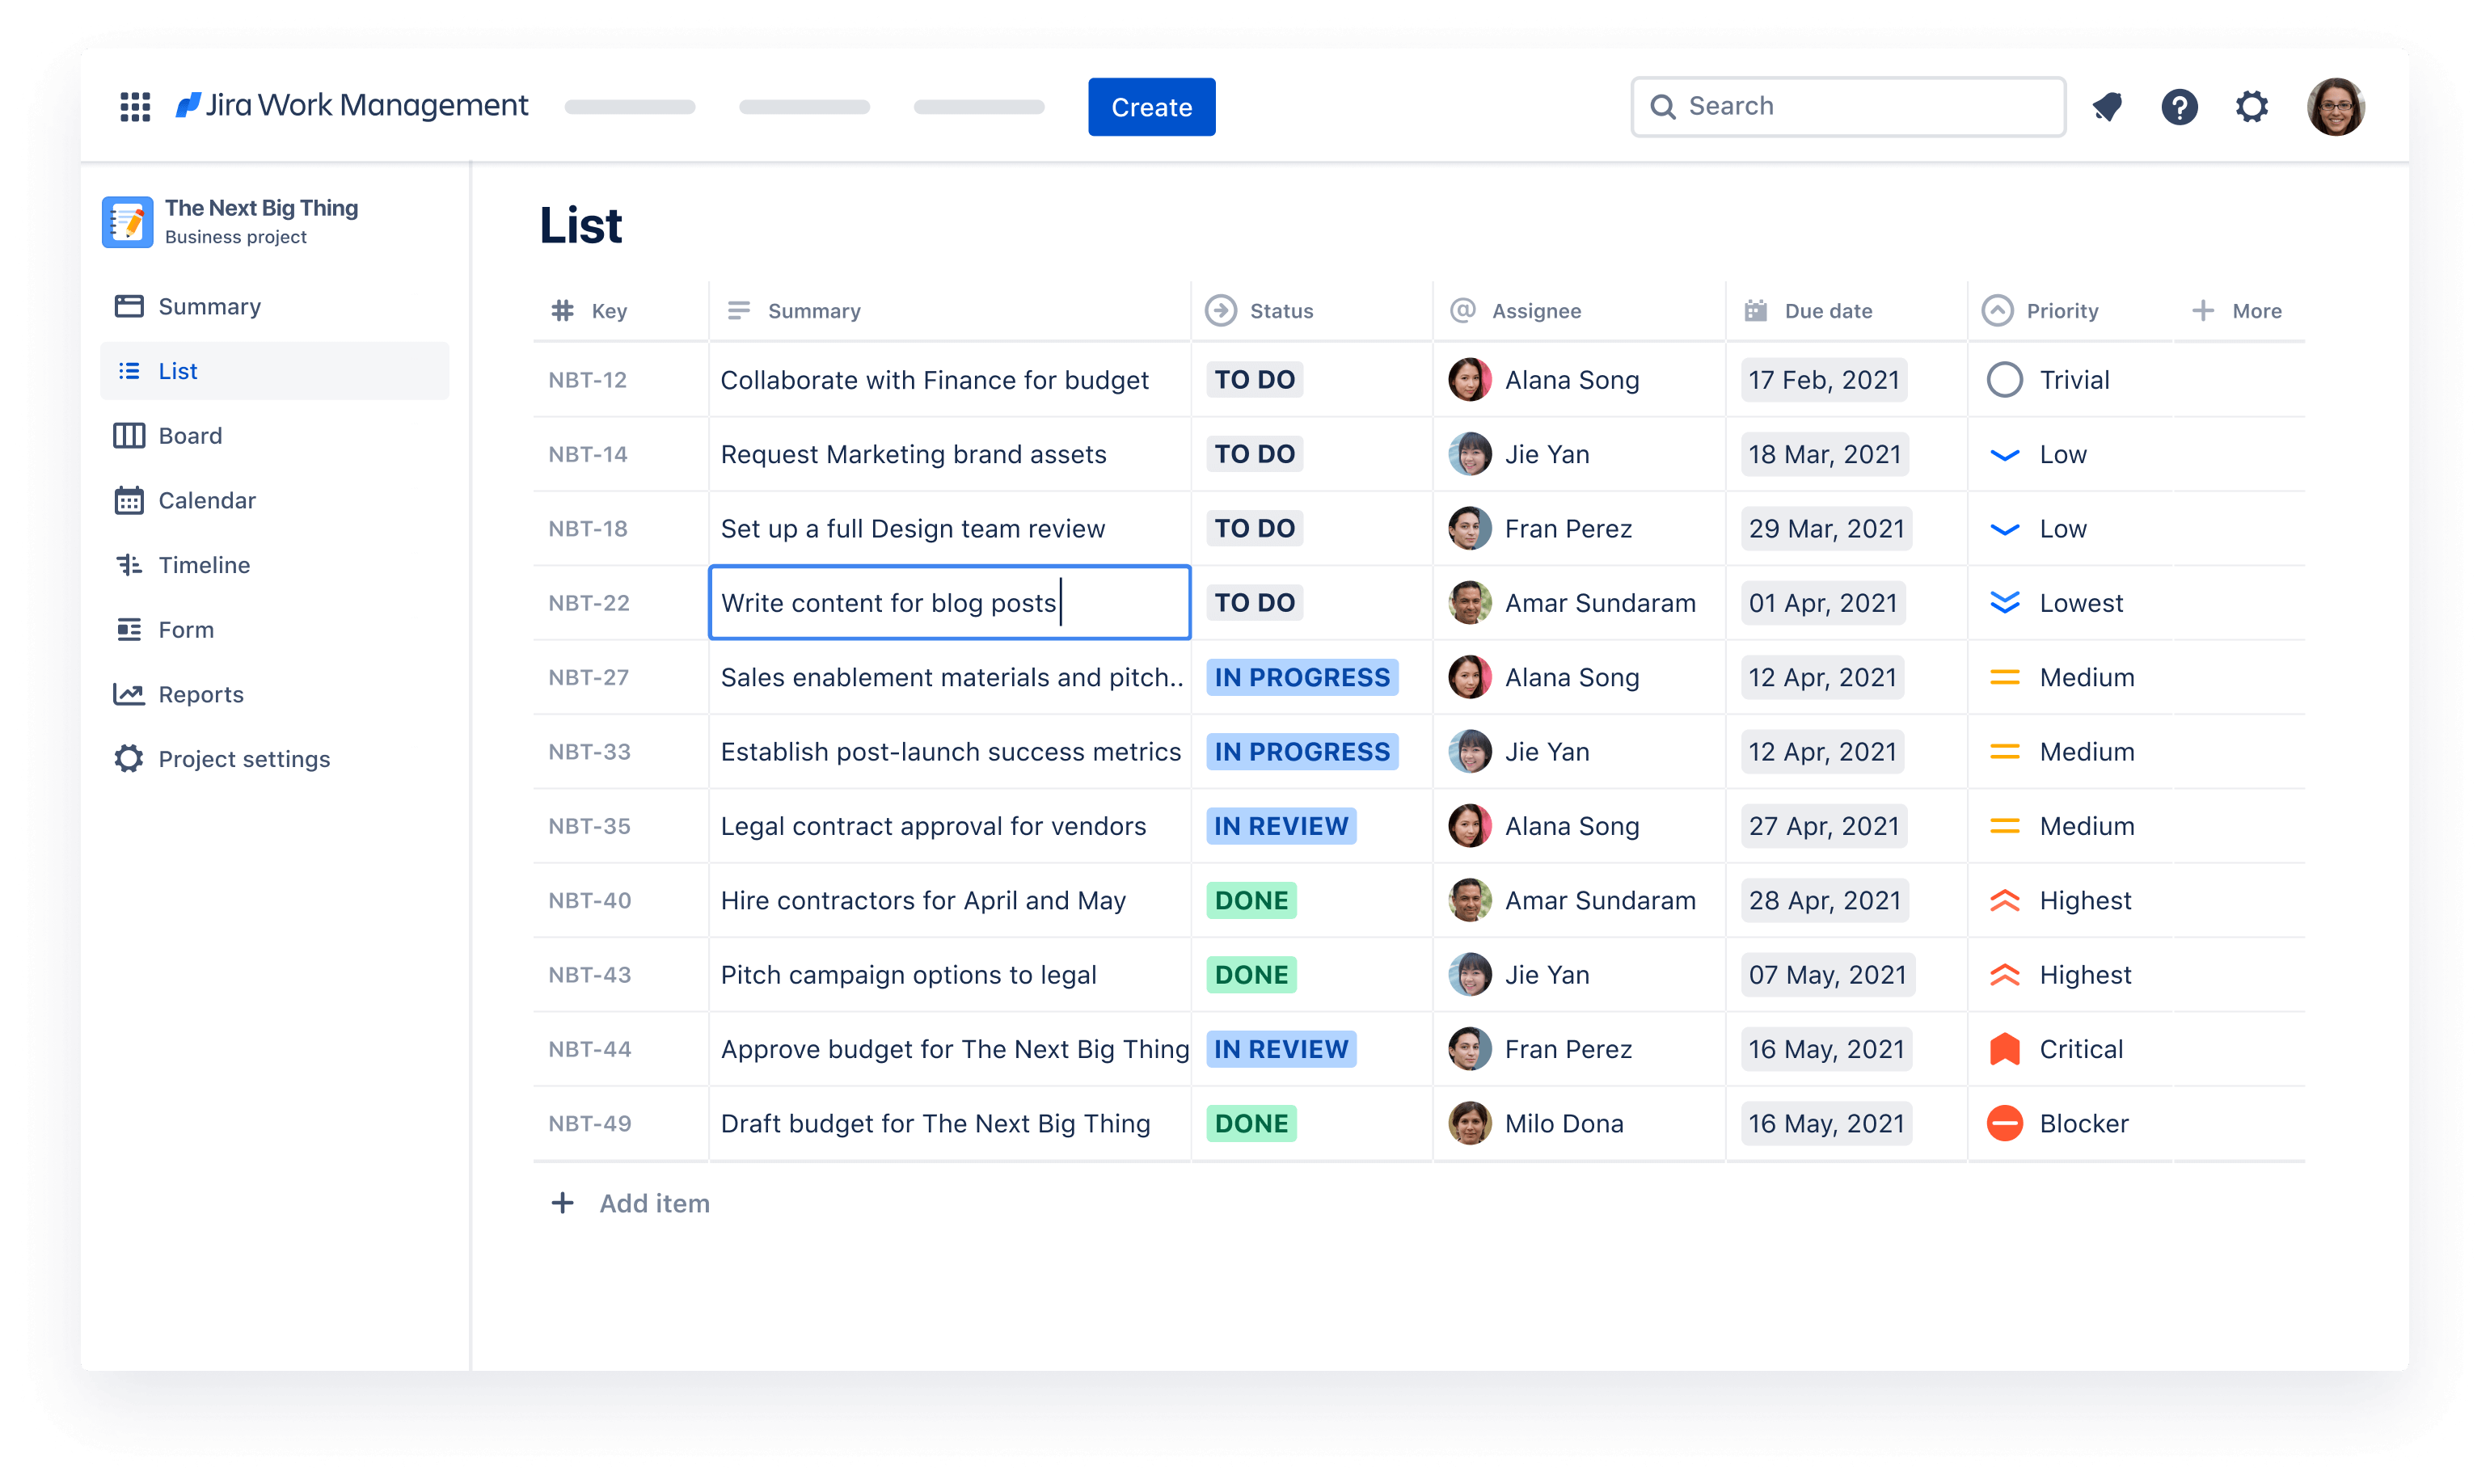 Get to know the List View from Jira Work Management